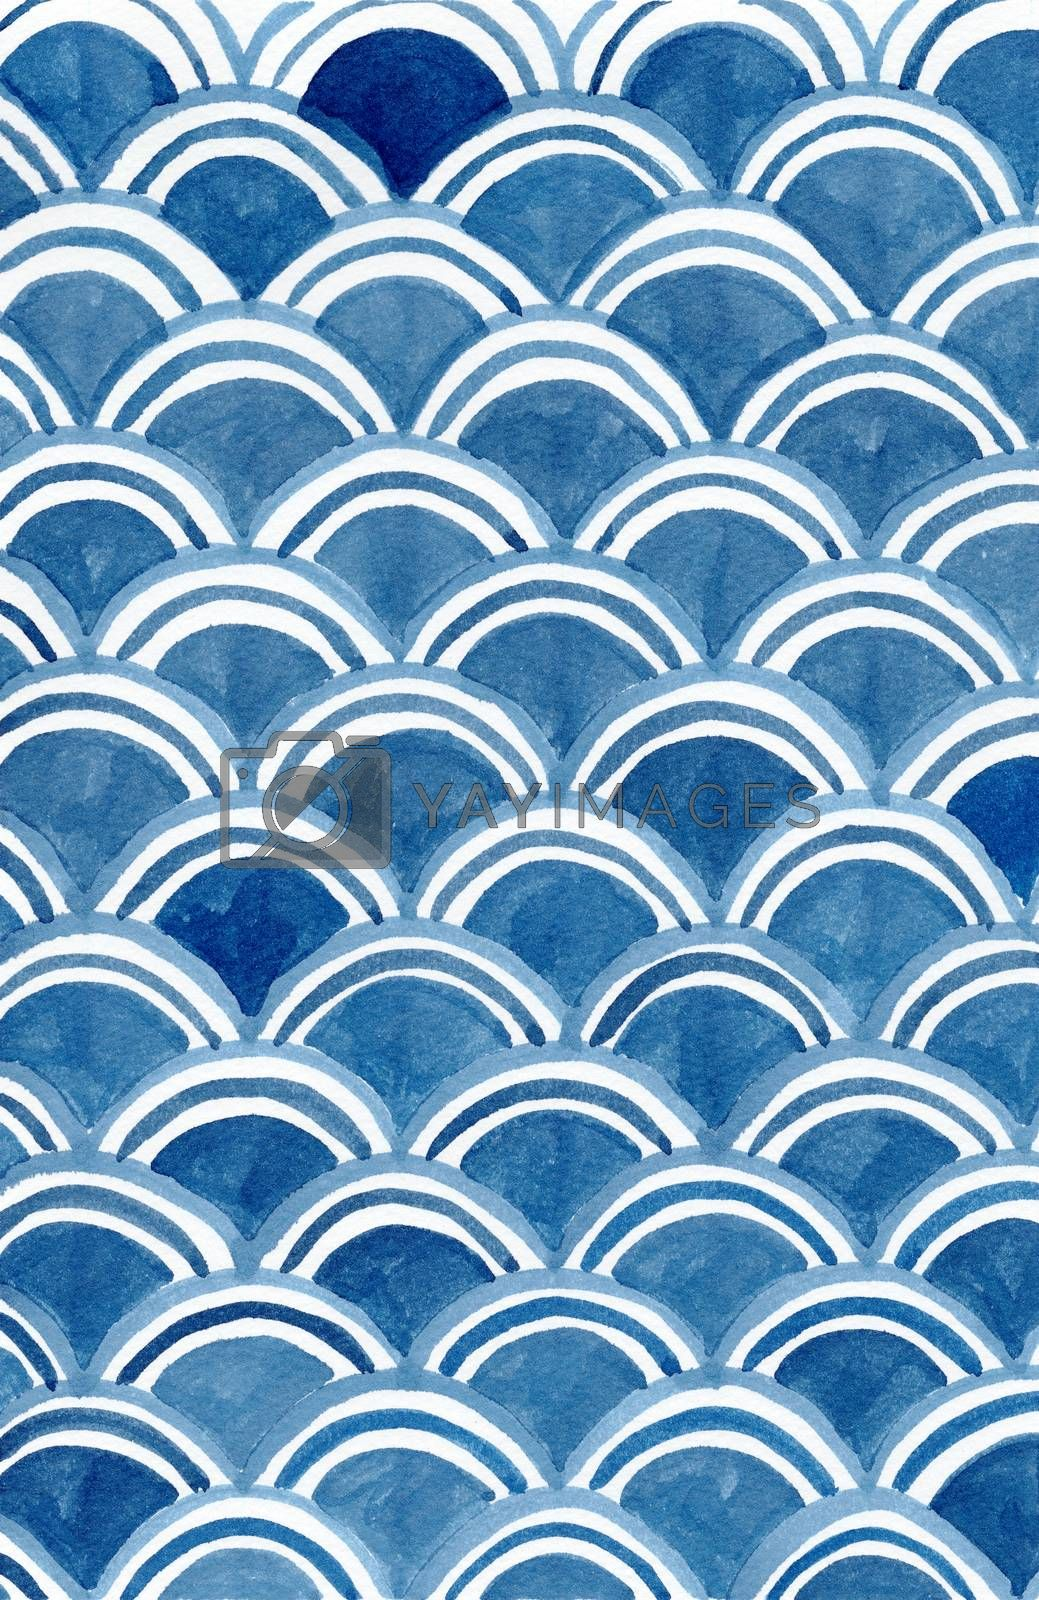 Ancient japanese pattern, Water wave circle style, Fish scale, oriental art watercolor hand painting background.